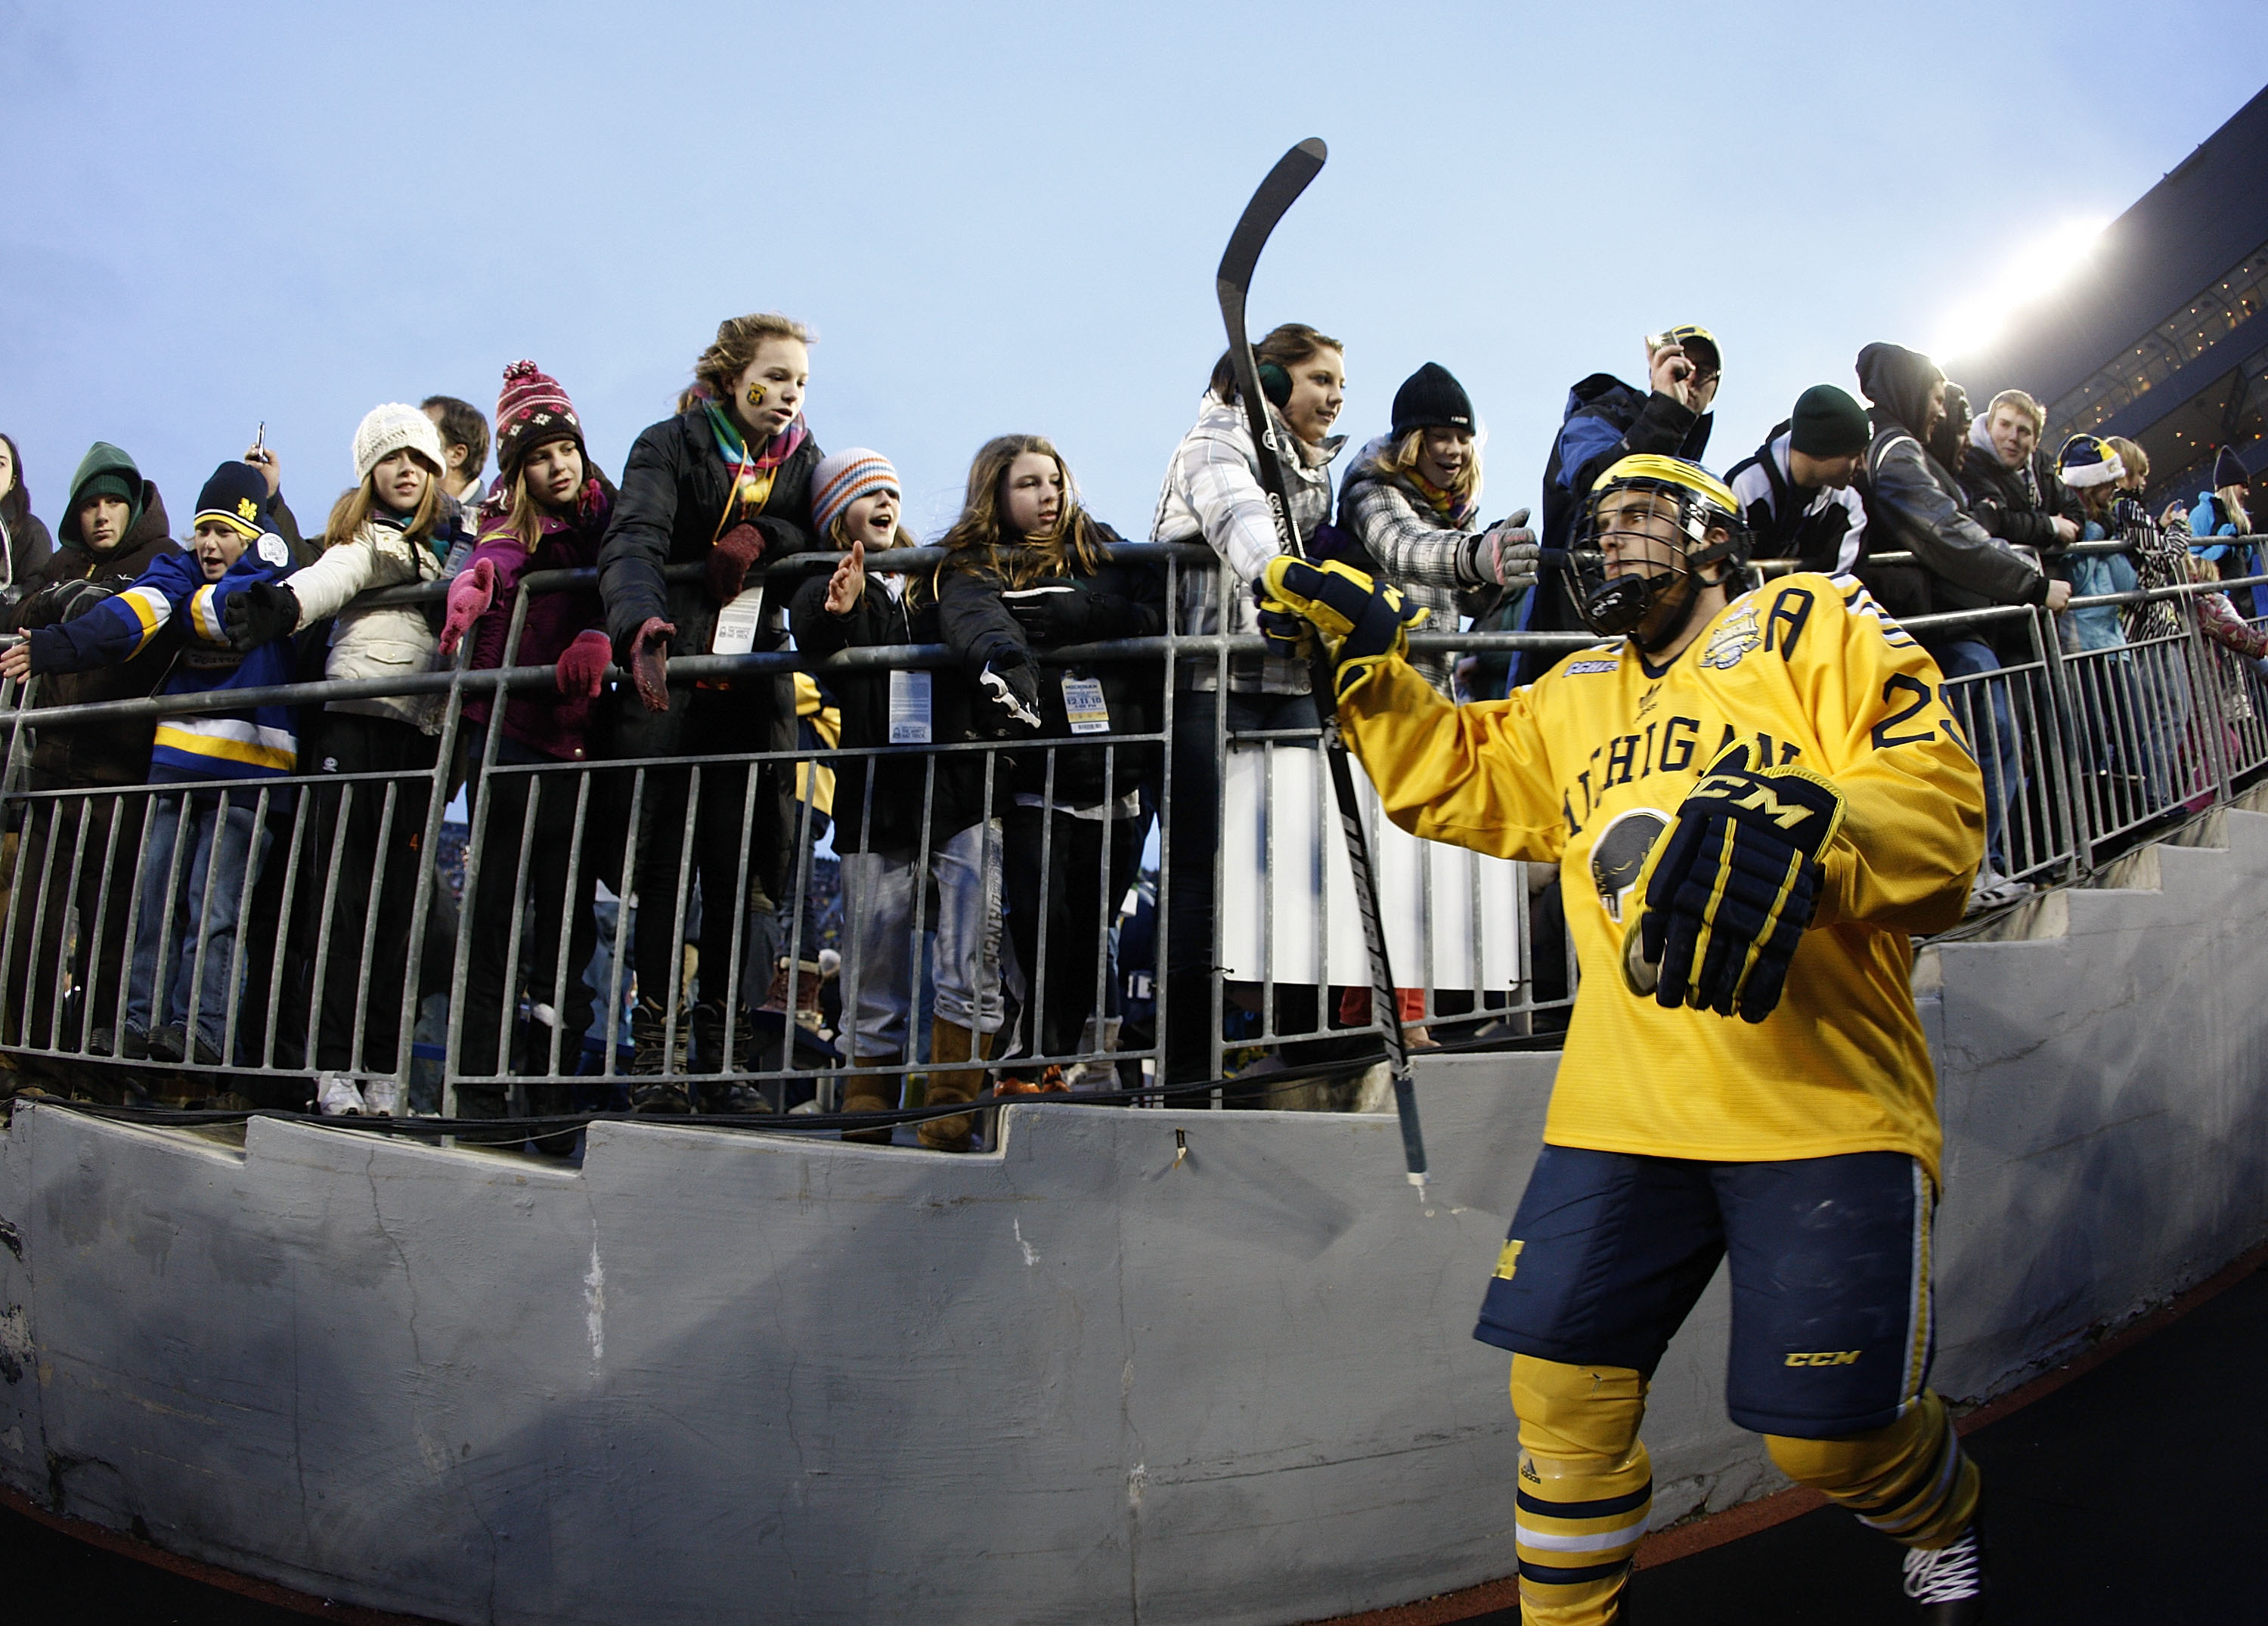 ANN ARBOR, MI - DECEMBER 11:  Louie Caporusso #29 of the Michigan Wolverines enters the stadium for the third period while playing the Michigan State Spartans at Michigan Stadium on December 11, 2010 in Ann Arbor, Michigan.  (Photo by Gregory Shamus/Getty